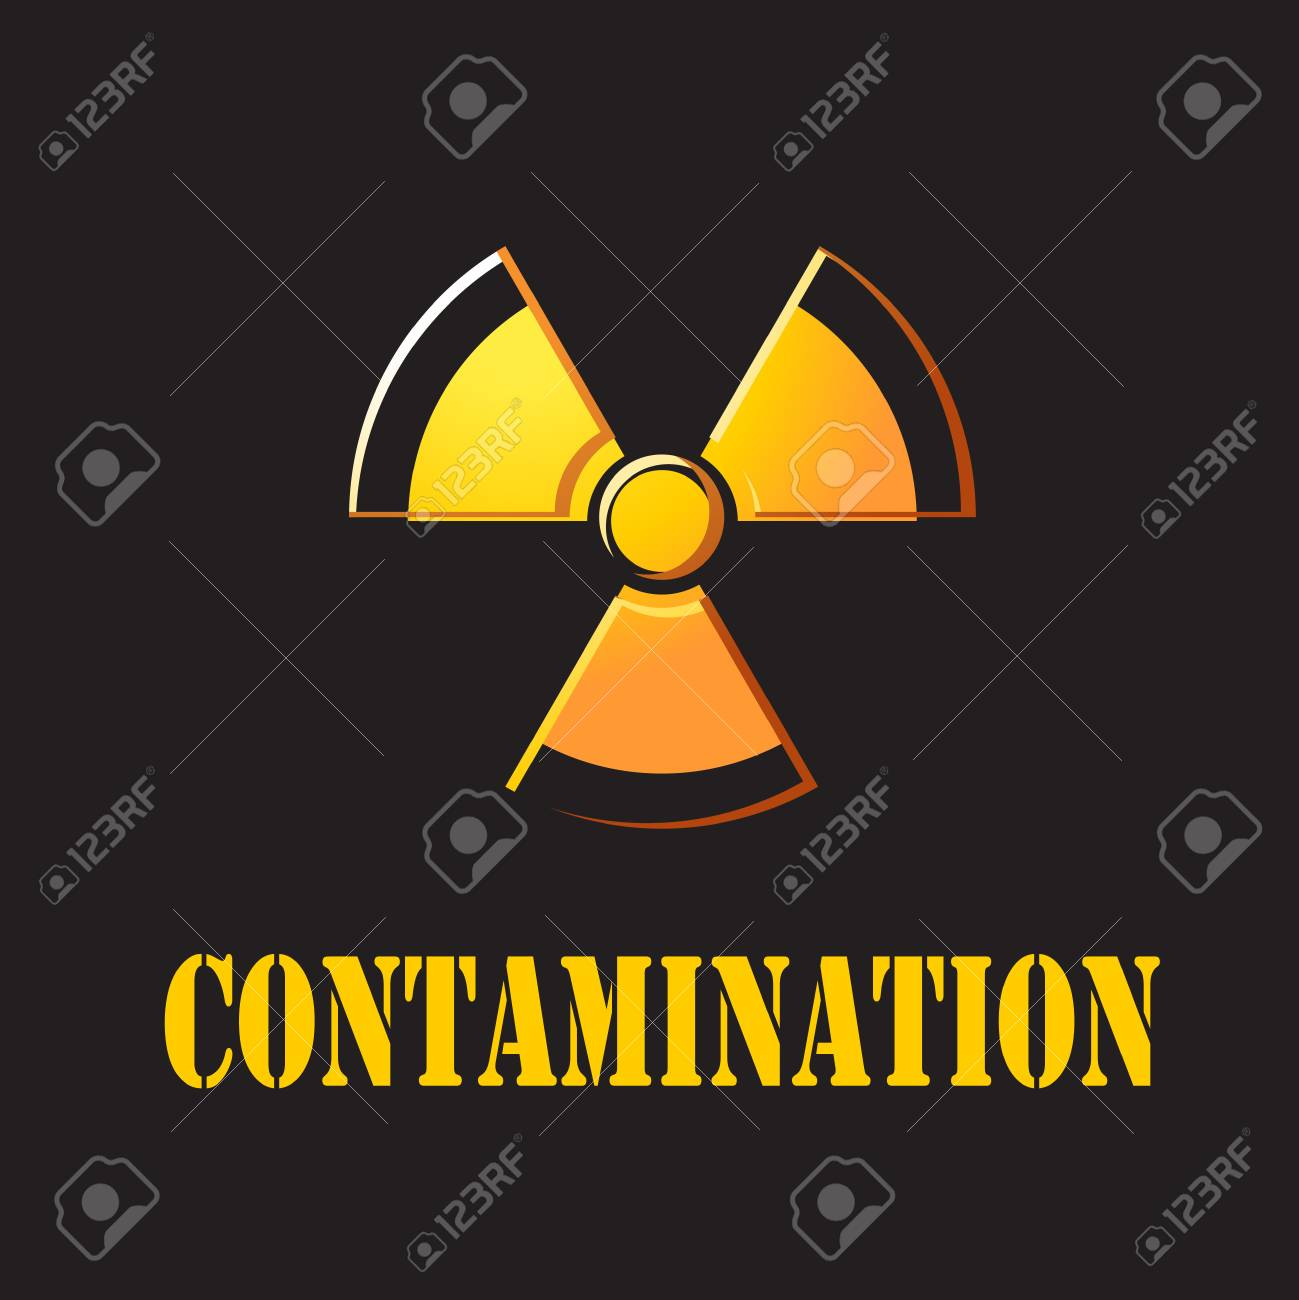 nuclear with contaminate Stock Photo - 24465210